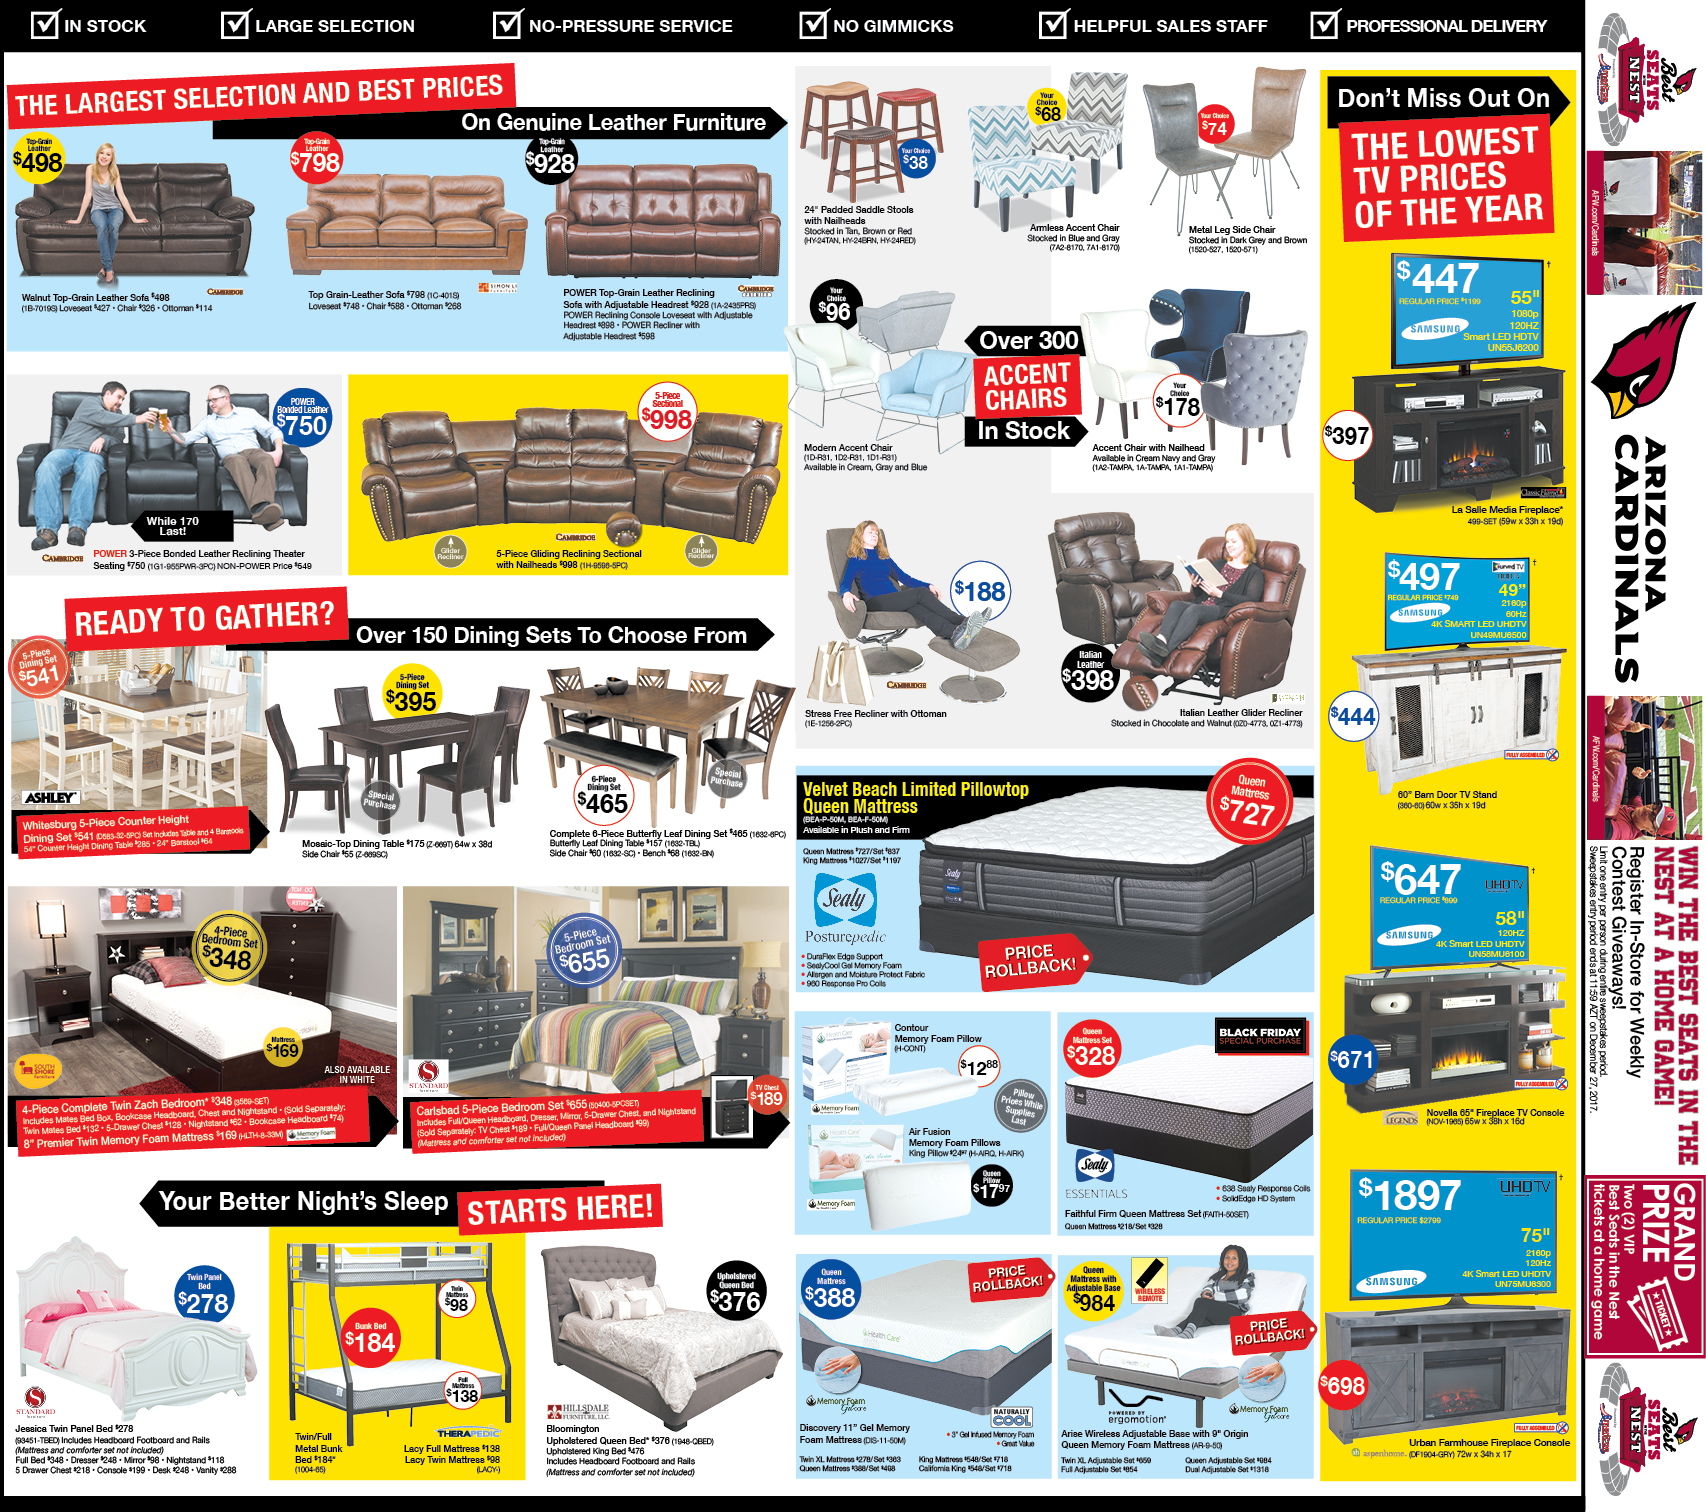 Arizona Ads | Hot Buys & Large Selection in Mattresses and furniture